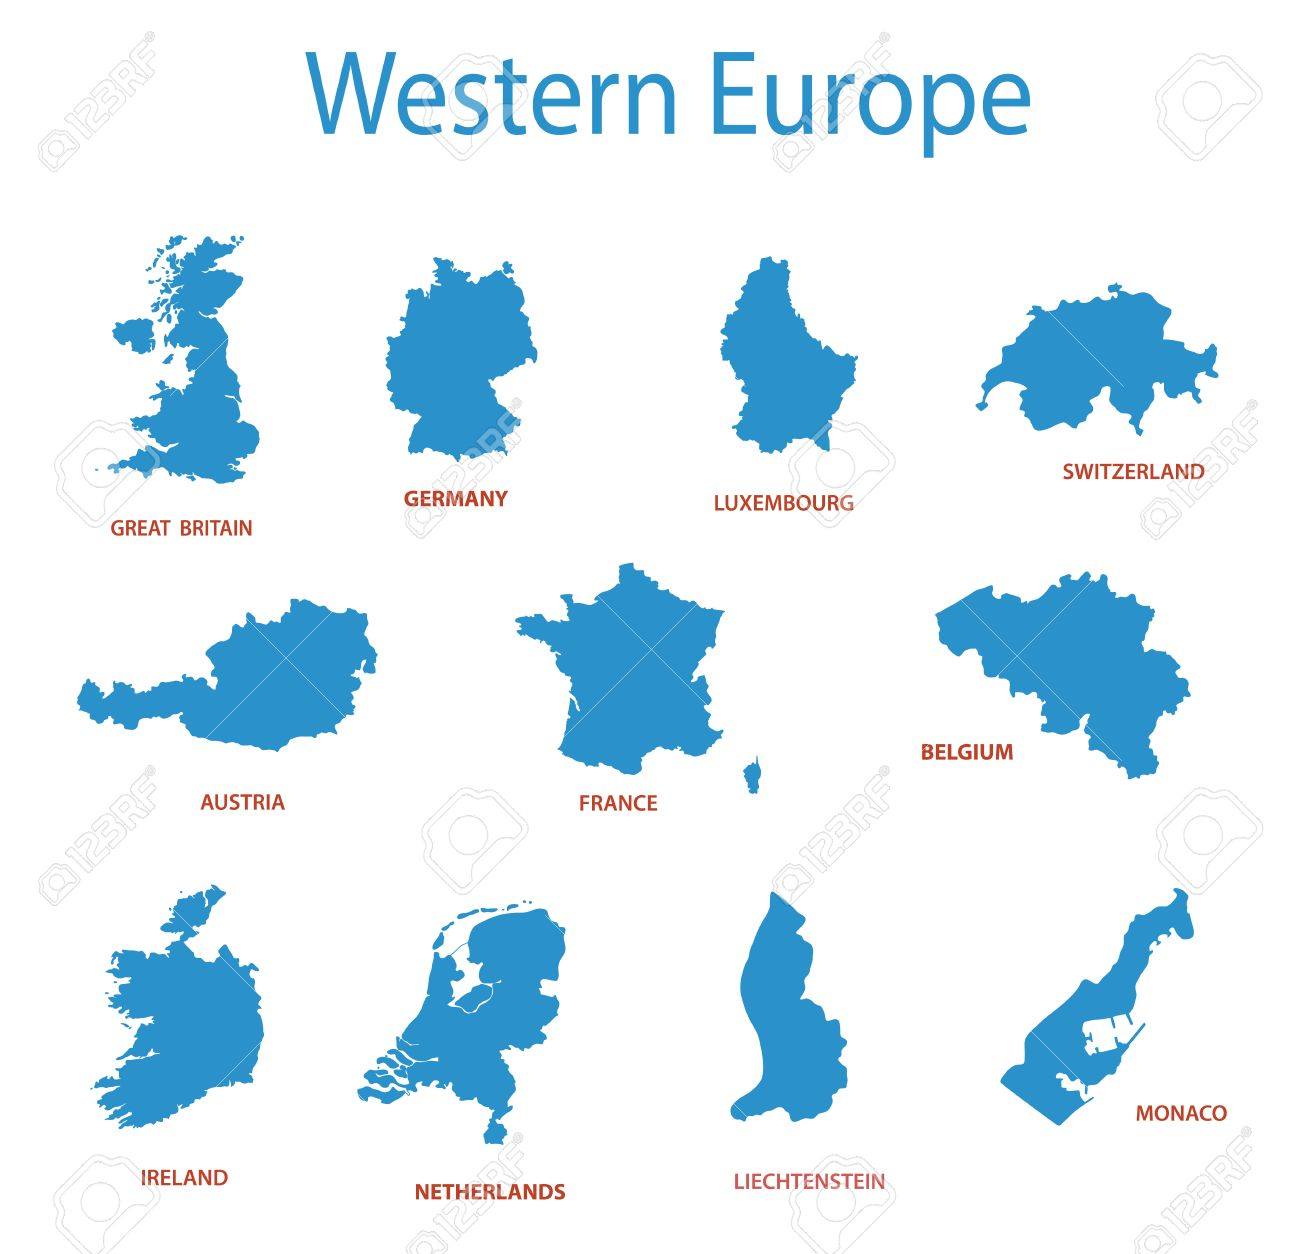 Western Europe Vector Maps Of Territories Royalty Free Cliparts - Western europe